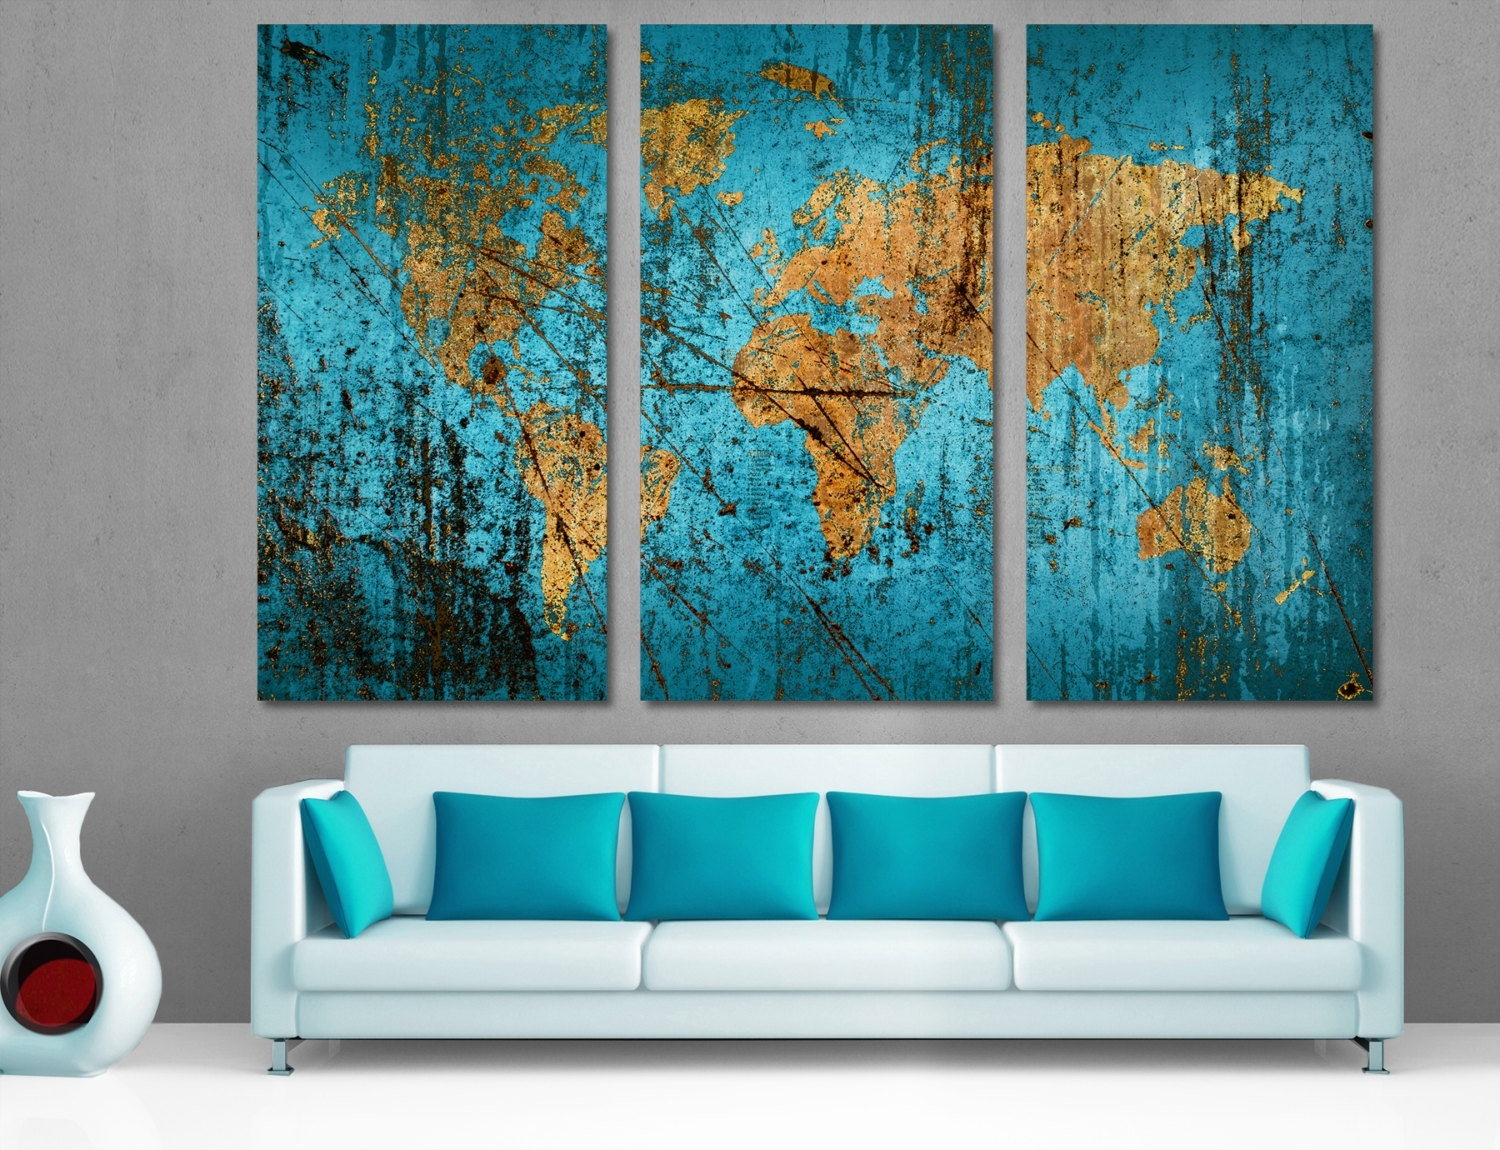 3 Panel Split Canvas Dark Blue World Map Wall Art Canvas. Navy Intended For Best And Newest Dark Blue Abstract Wall Art (Gallery 2 of 20)